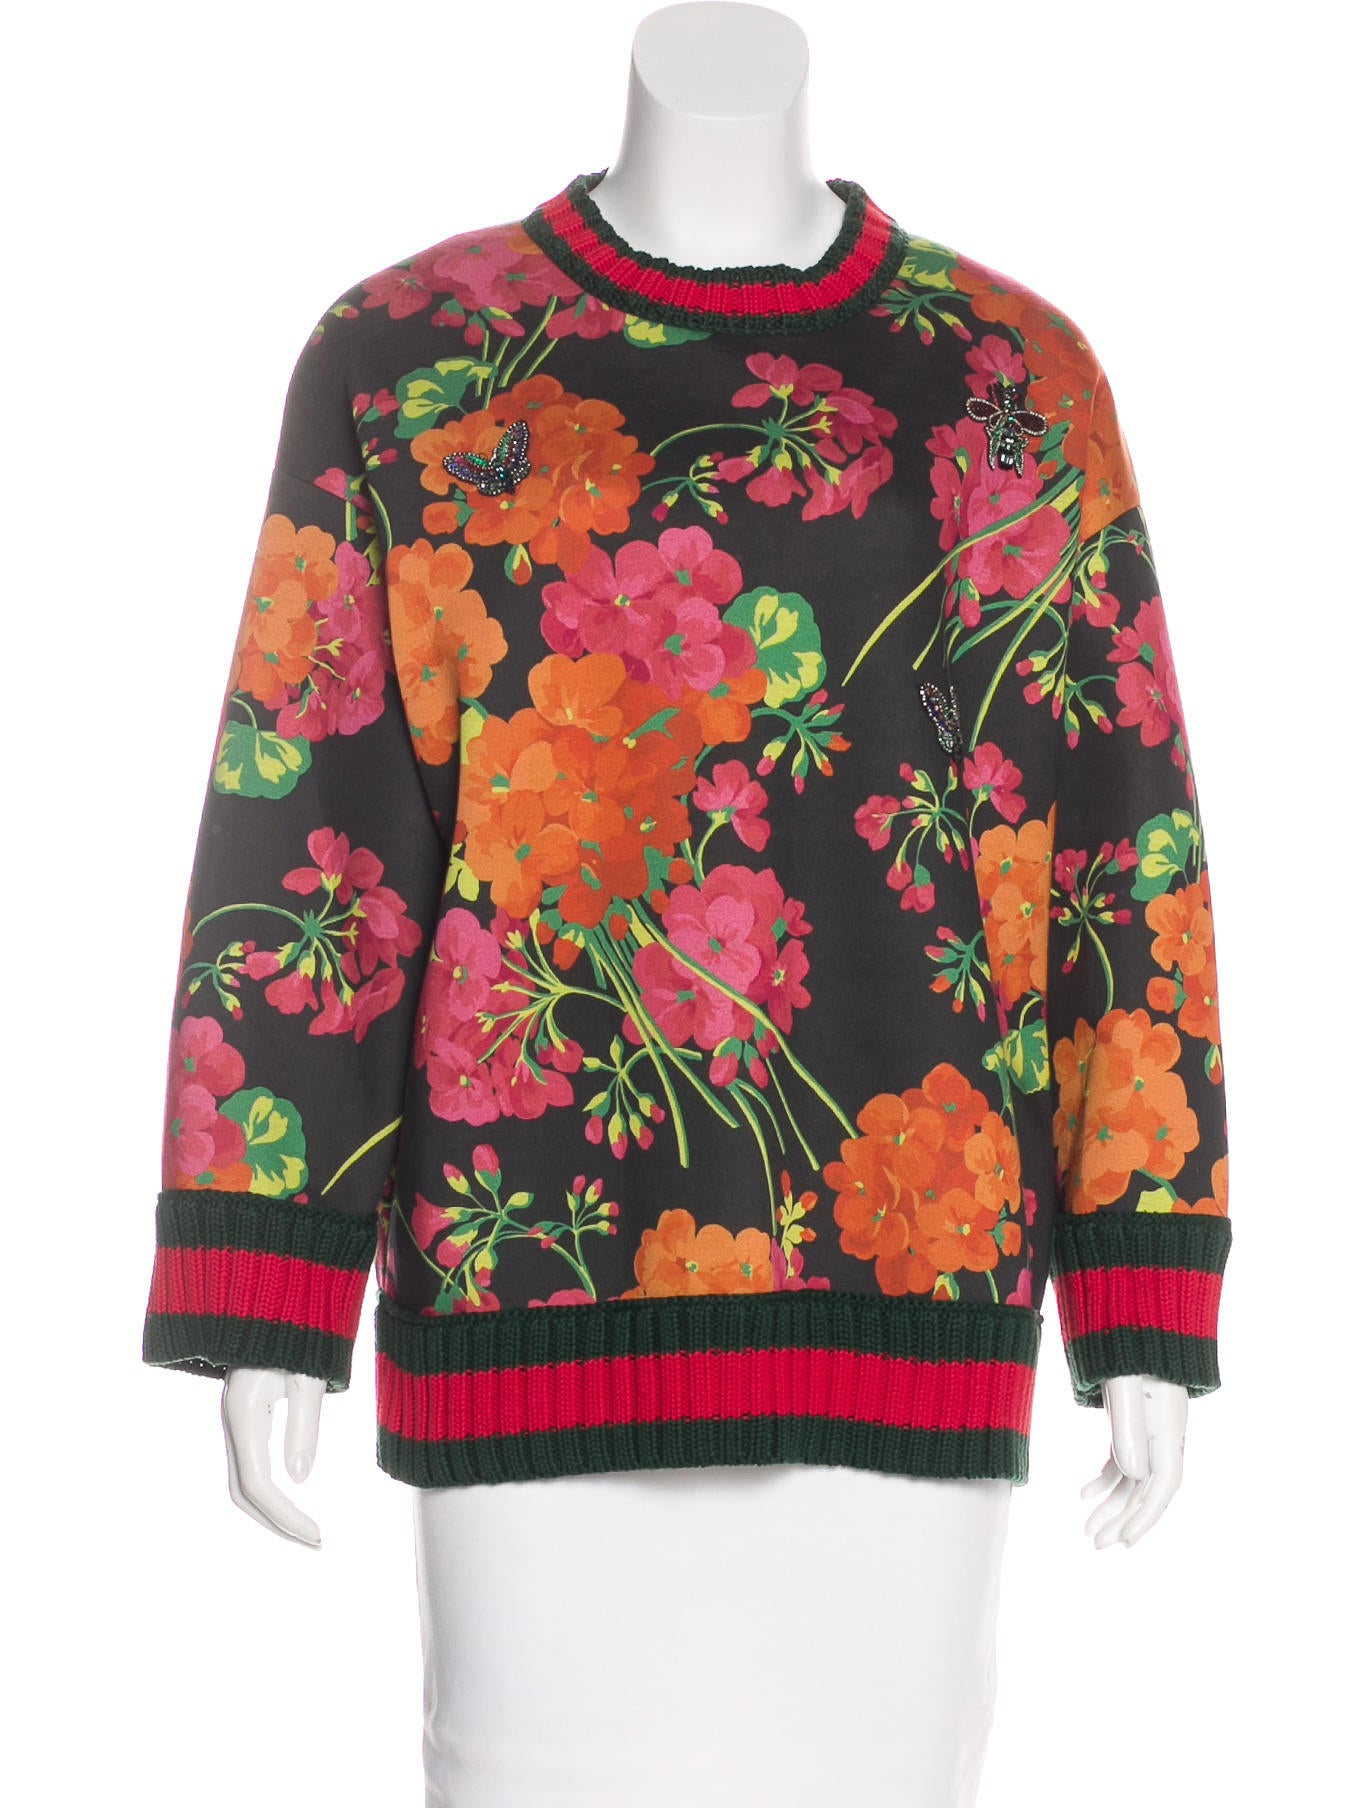 Find great deals on eBay for floral sweatshirt. Shop with confidence.